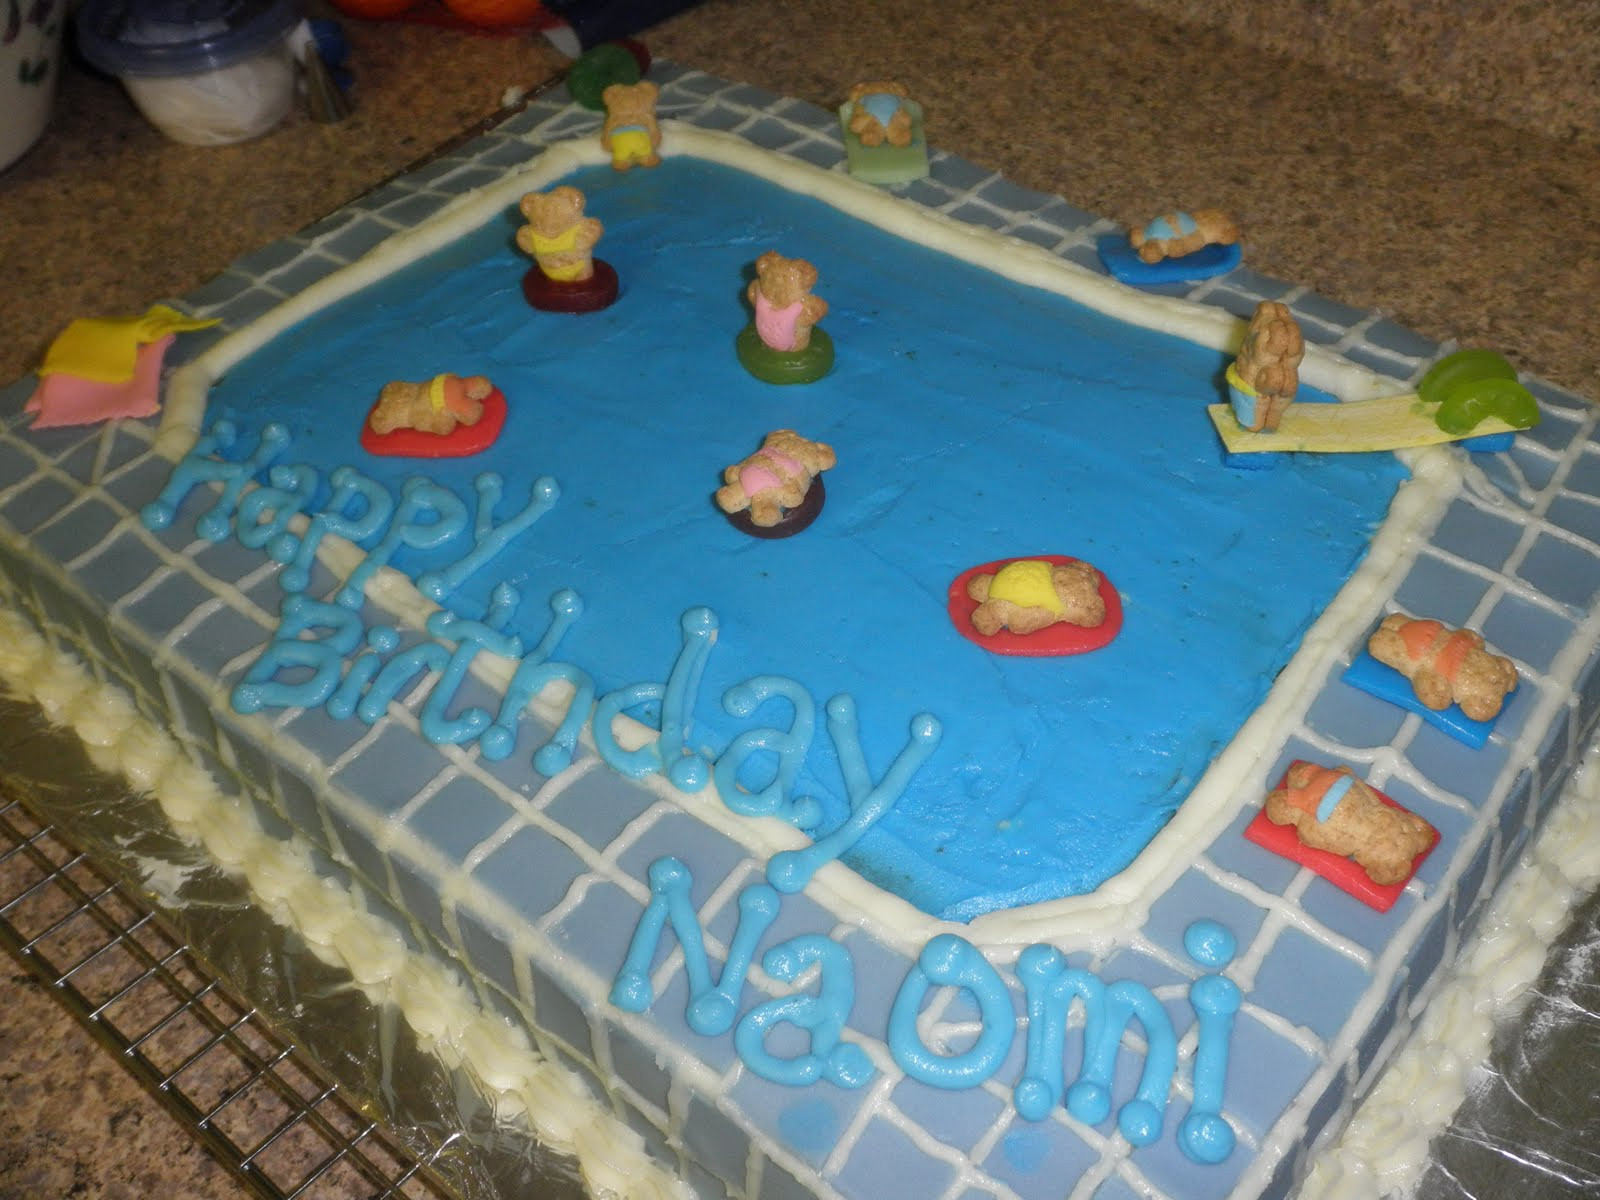 Pool Party Cake Ideas For Birthdays  Cakes By D Pool Party Birthday Cake